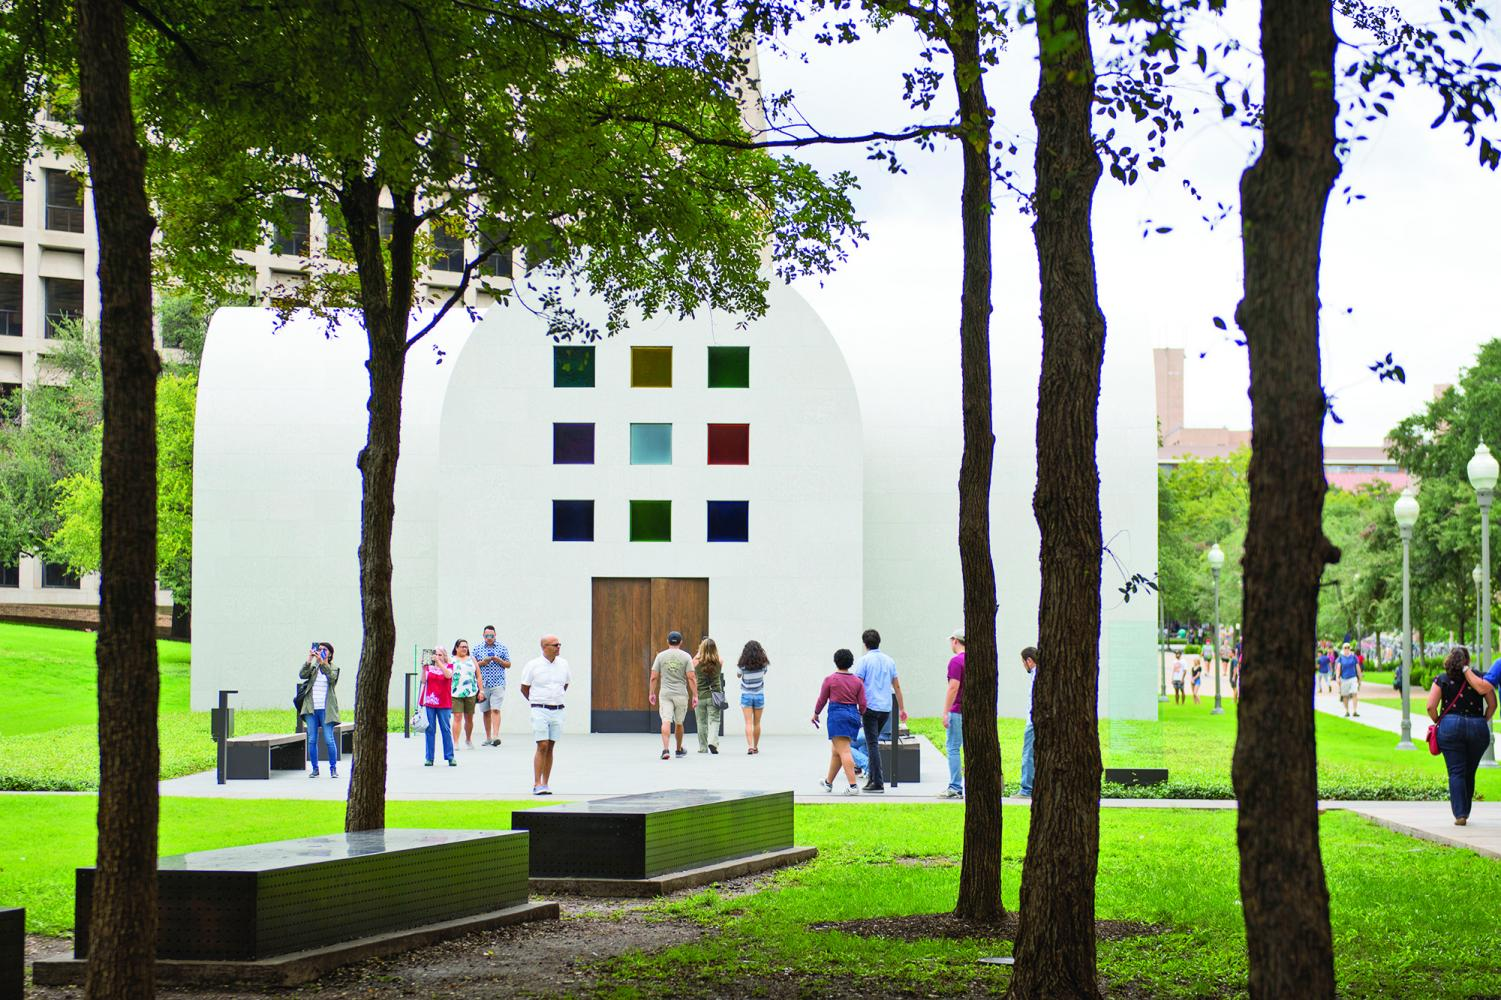 You can find Ellsworth Kelly's